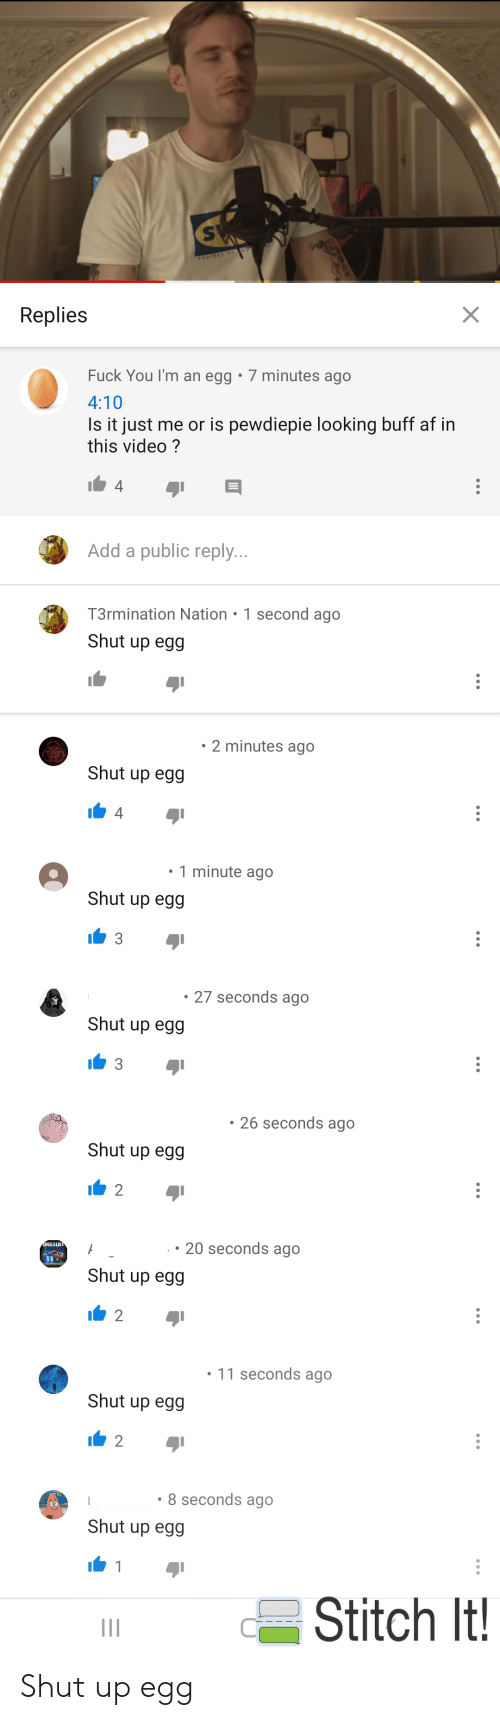 Af, Fuck You, and Shut Up: PROTECT T  X  Replies  Fuck You I'm an egg 7 minutes ago  4:10  Is it just me or is pewdiepie looking buff af in  this video?  4  Add a public reply...  T3rmination Nation 1 second ago  Shut up egg  2 minutes ago  Shut up egg  4  1 minute ago  Shut up egg  3  27 seconds ago  Shut up egg  3  26 seconds ago  Shut up egg  2  20 seconds ago  NGELILLU  Shut up egg  2  11 seconds ago  Shut up egg  8 seconds ago  Shut up egg  Stitch It! Shut up egg